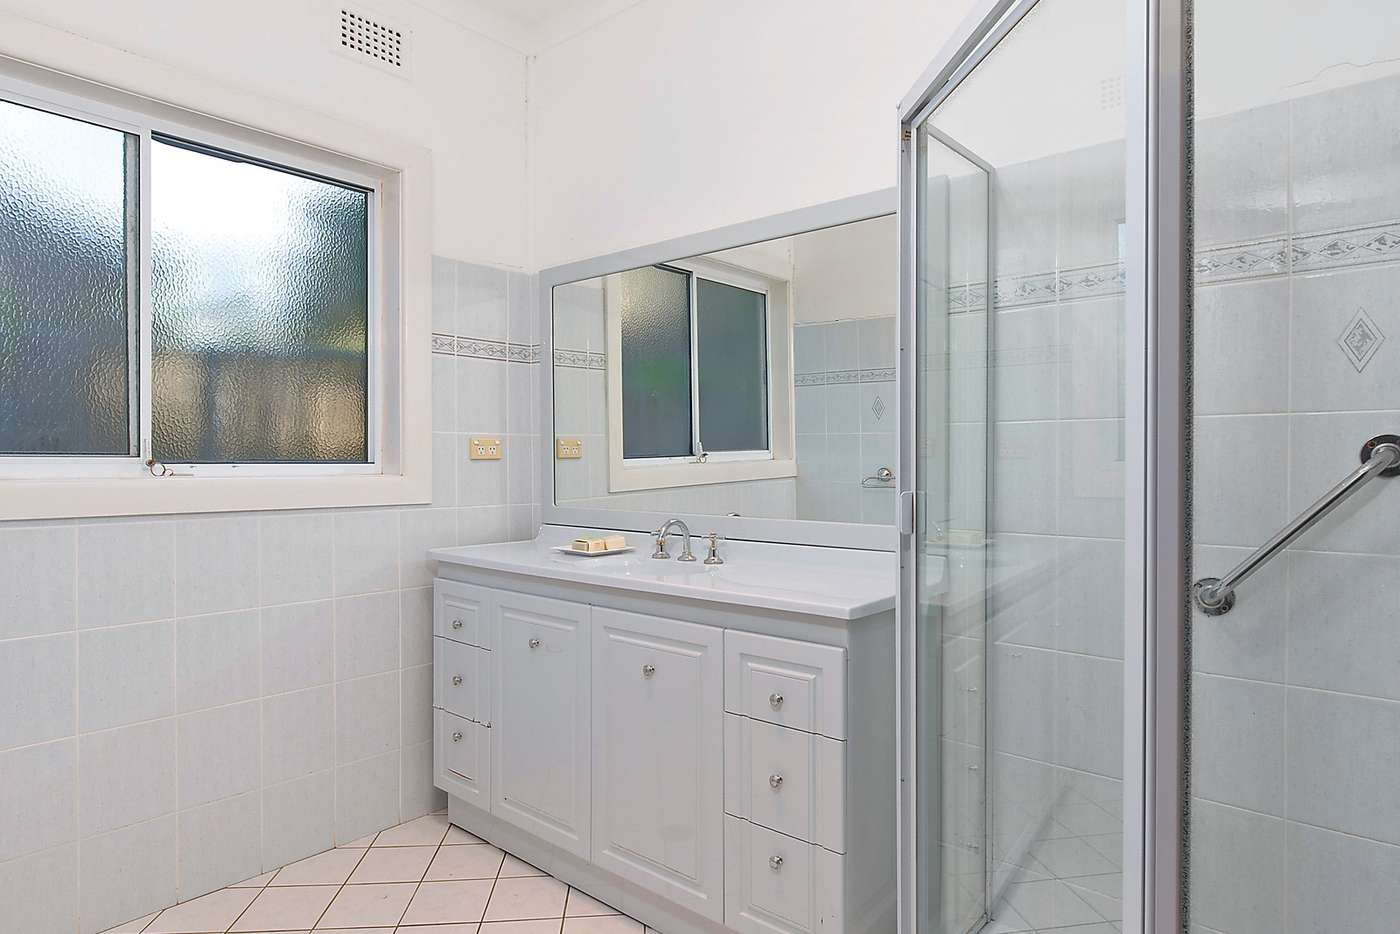 Fifth view of Homely house listing, 5 Clarke Street, West Ryde NSW 2114